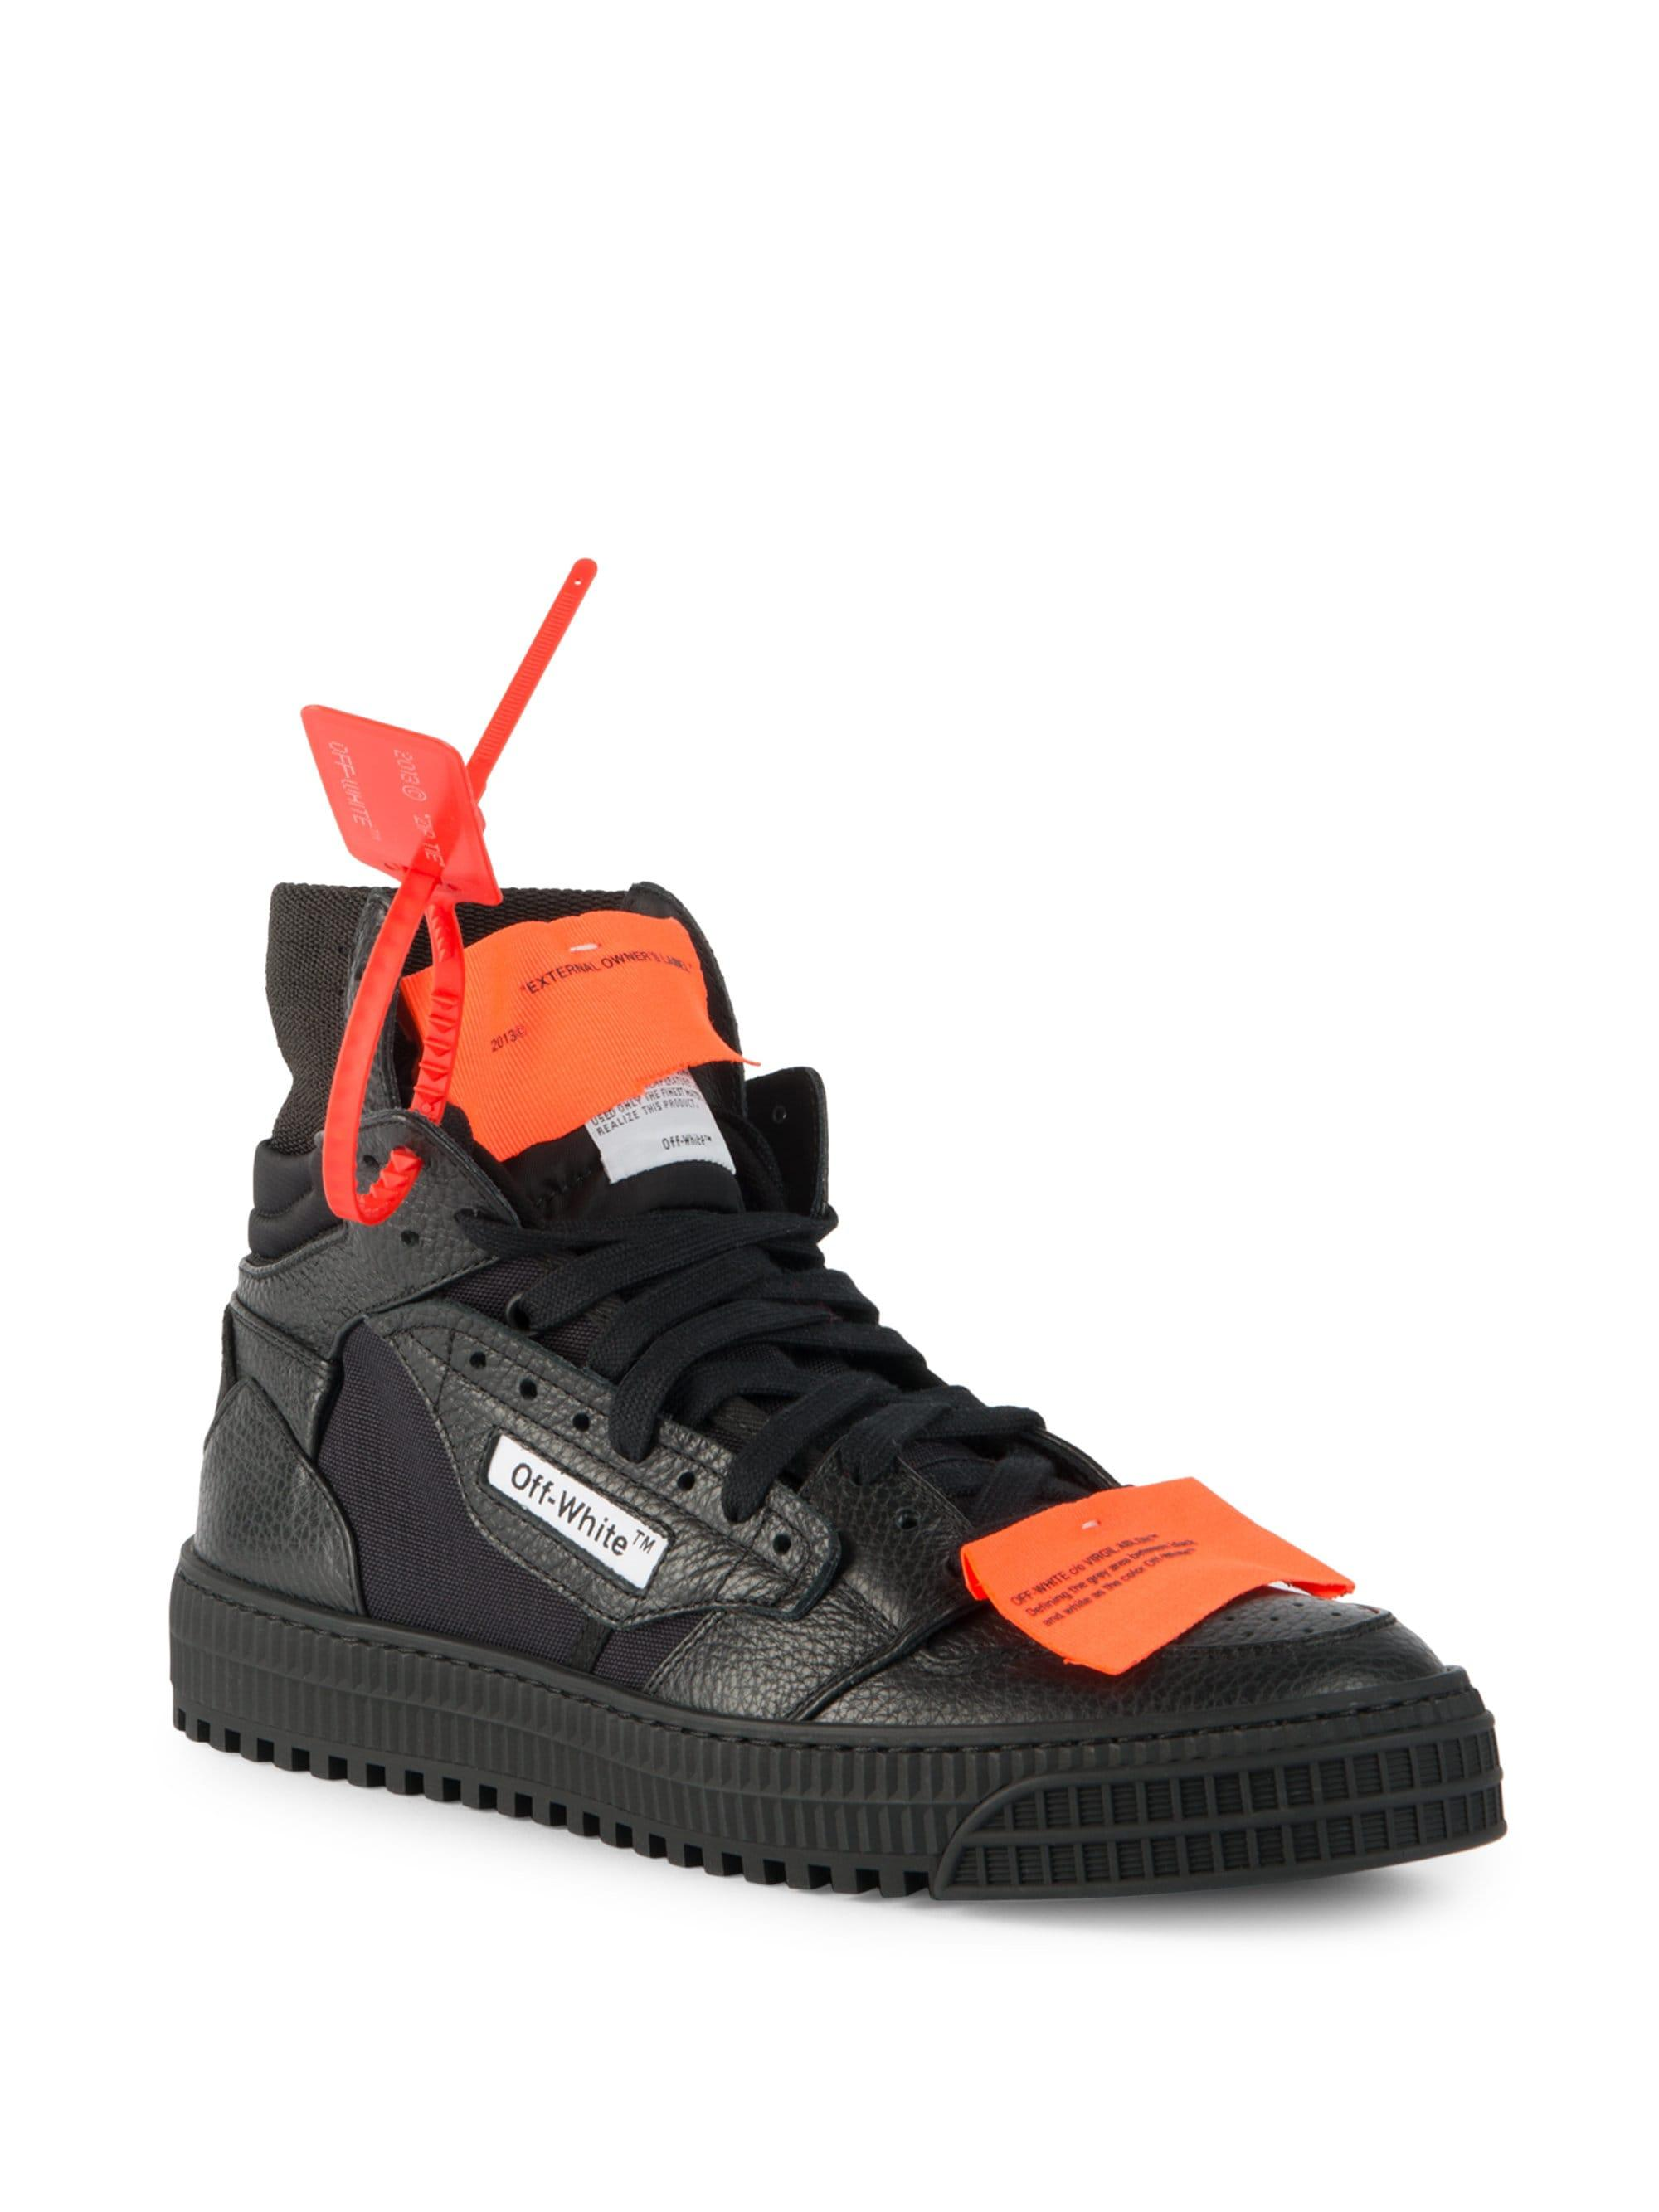 3587f5bafb0c Lyst - Off-White c o Virgil Abloh Low 3.0 Sneakers in Black - Save 43%